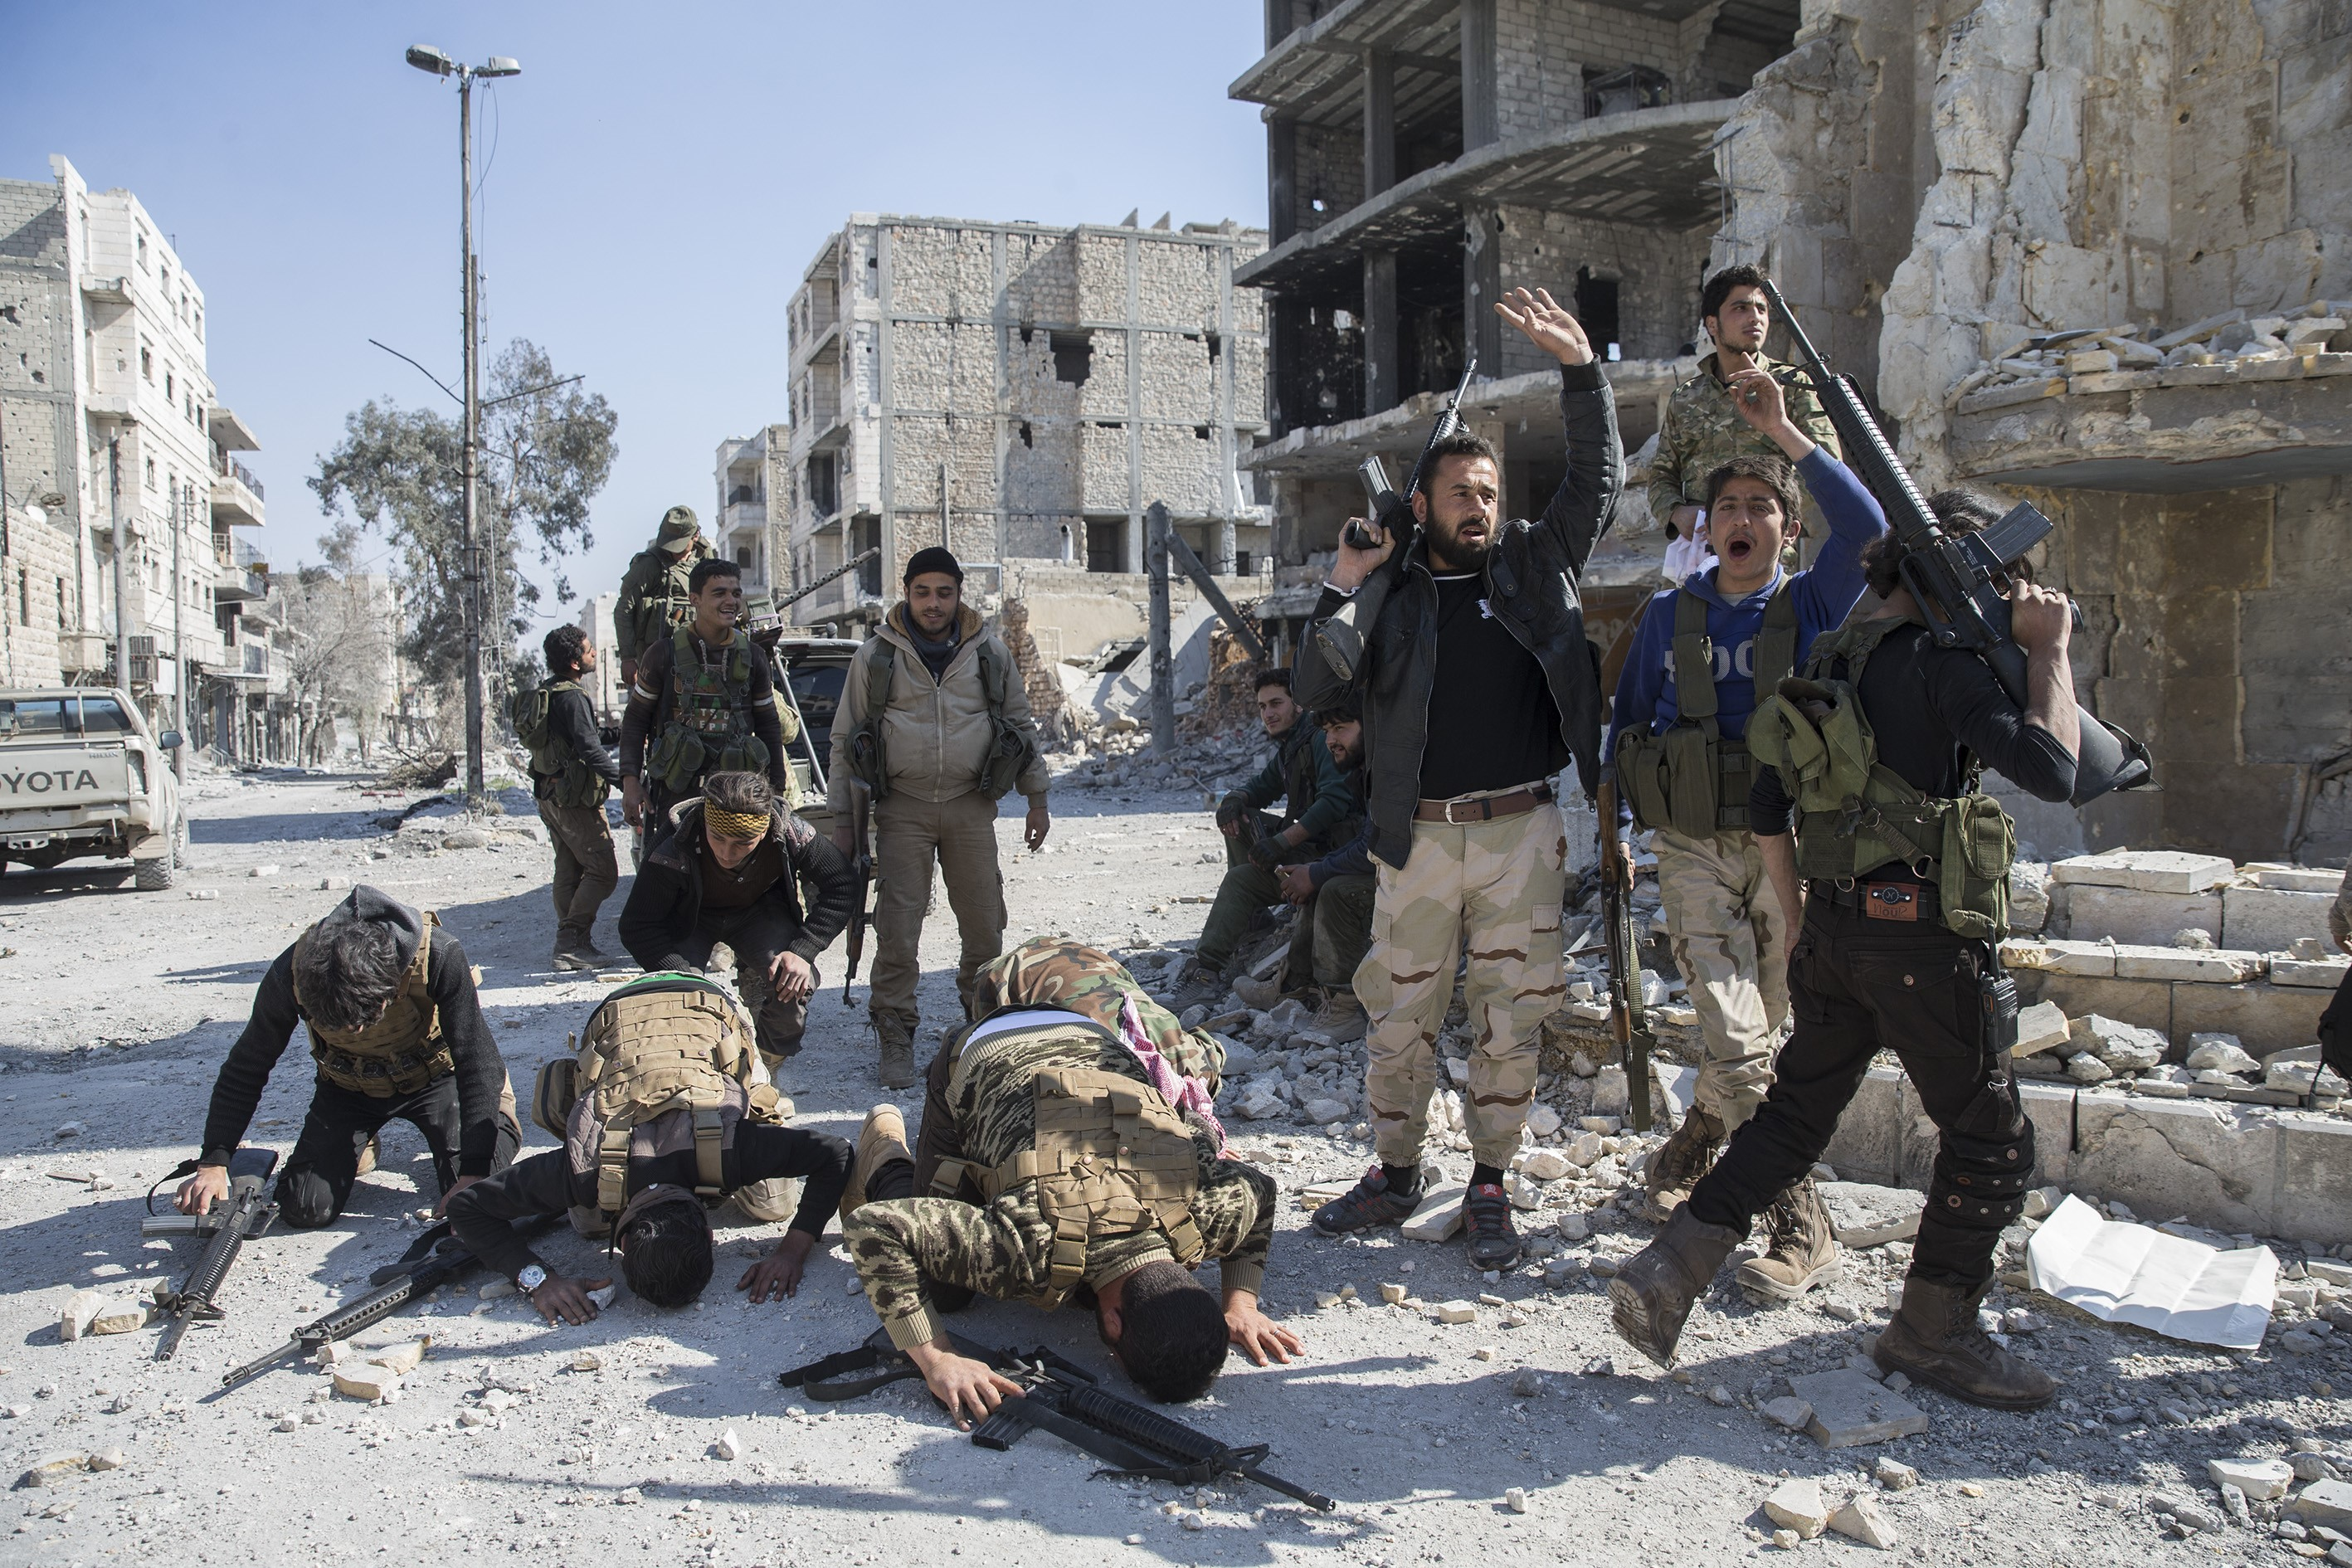 Members of Free Syrian Army celebrate in Syria's Al Bab, after taking control of the district from Daesh during  Operation Euphrates Shield , Aleppo, Syria on Feb. 23, 2017.